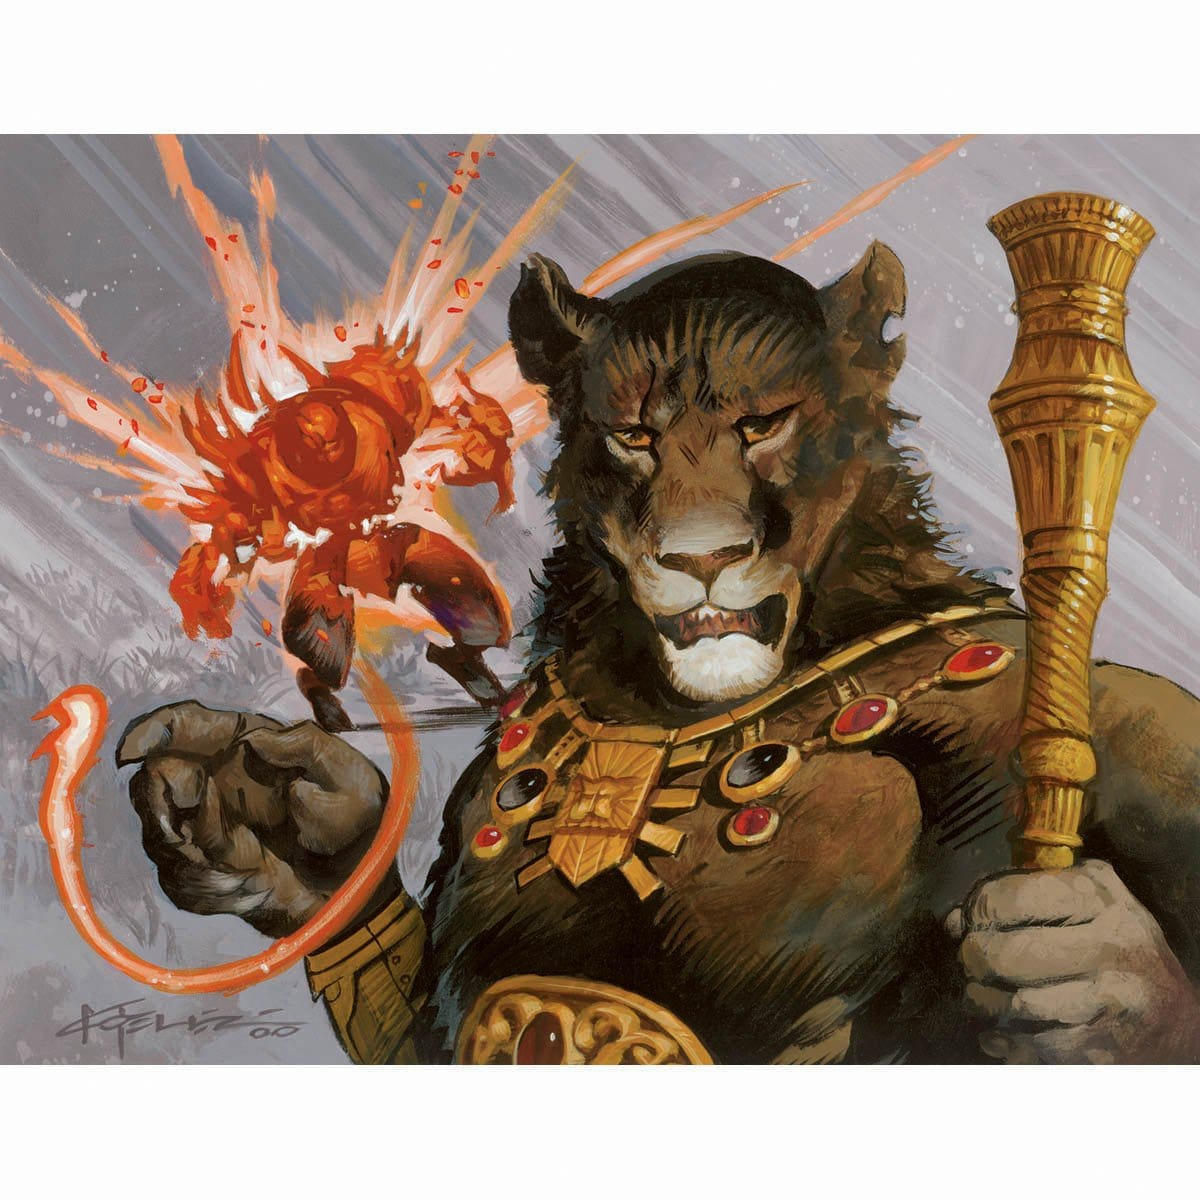 Planeswalker's Fury Print - Print - Original Magic Art - Accessories for Magic the Gathering and other card games